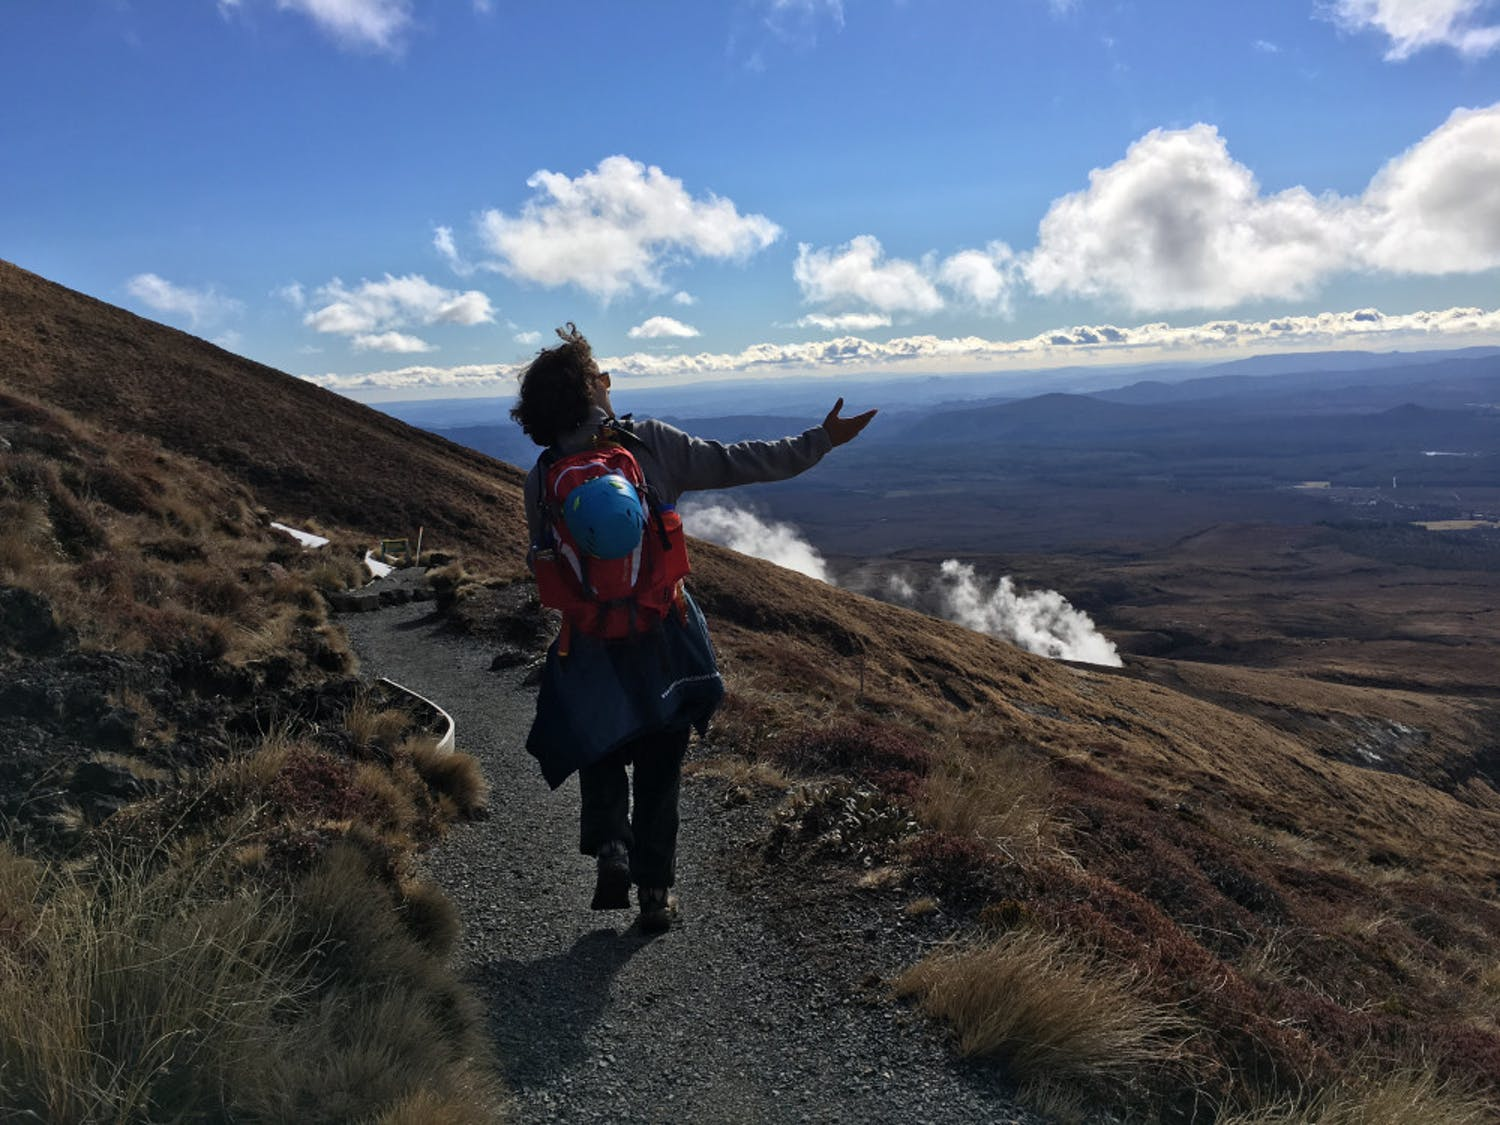 David DiMauro, a 22-year-old UF biology senior, ascends the Tongariro Alpine Crossing in New Zealand during Summer 2017. He will guide a hike up five mountains over Spring Break.